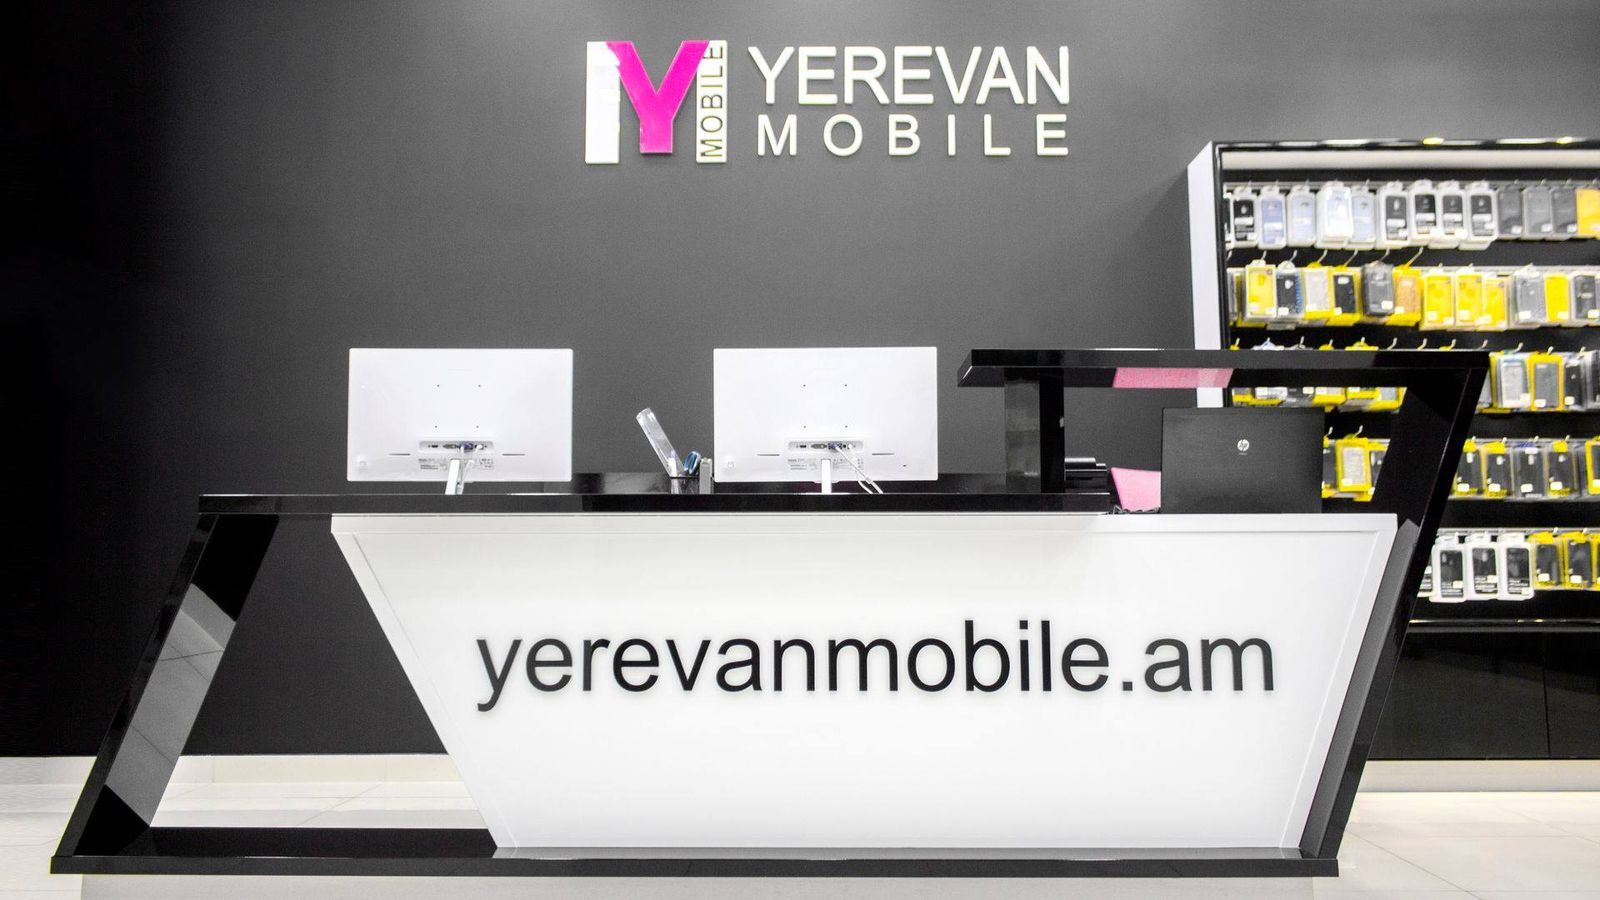 Yerevan Mobile trade show booth design example